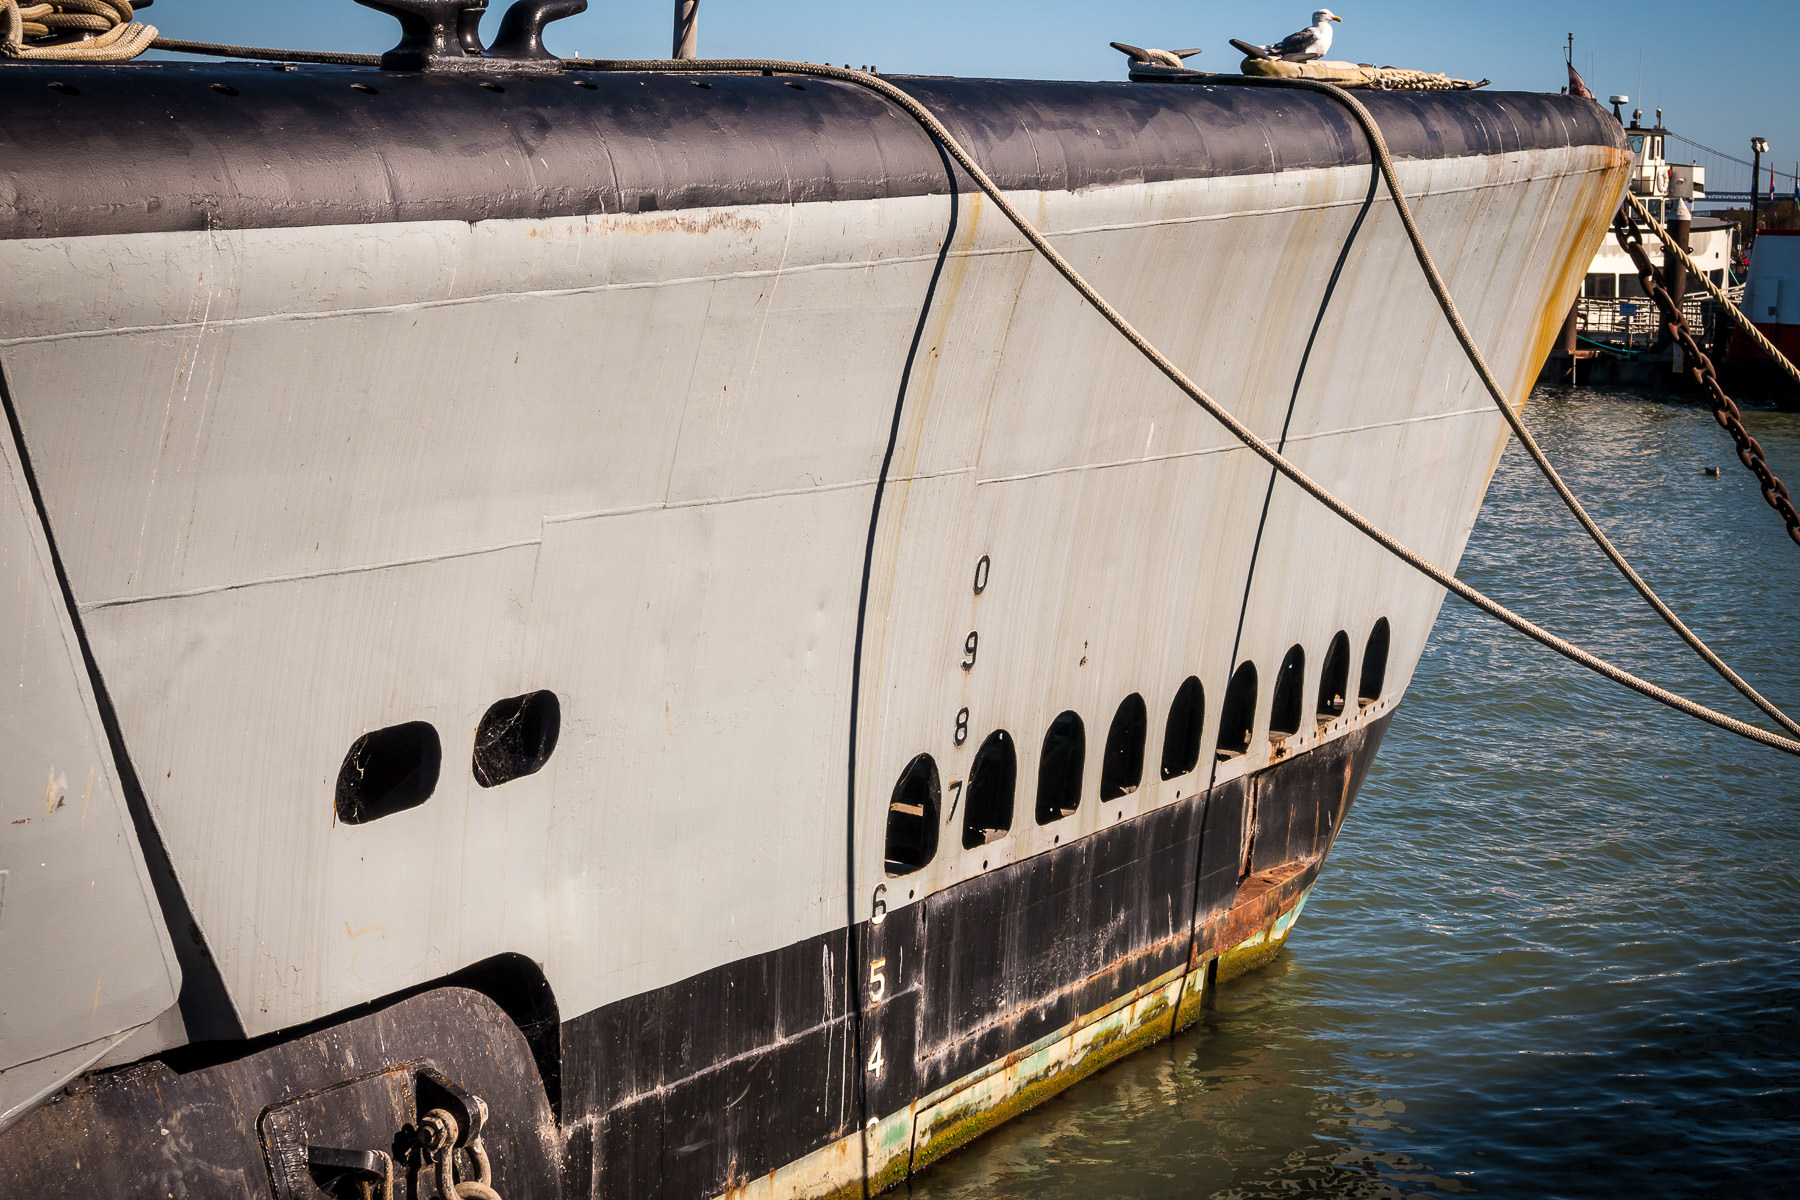 Detail of the bow of the World War II-era submarine USS Pampanito, now on display at San Francisco's Fisherman's Wharf.